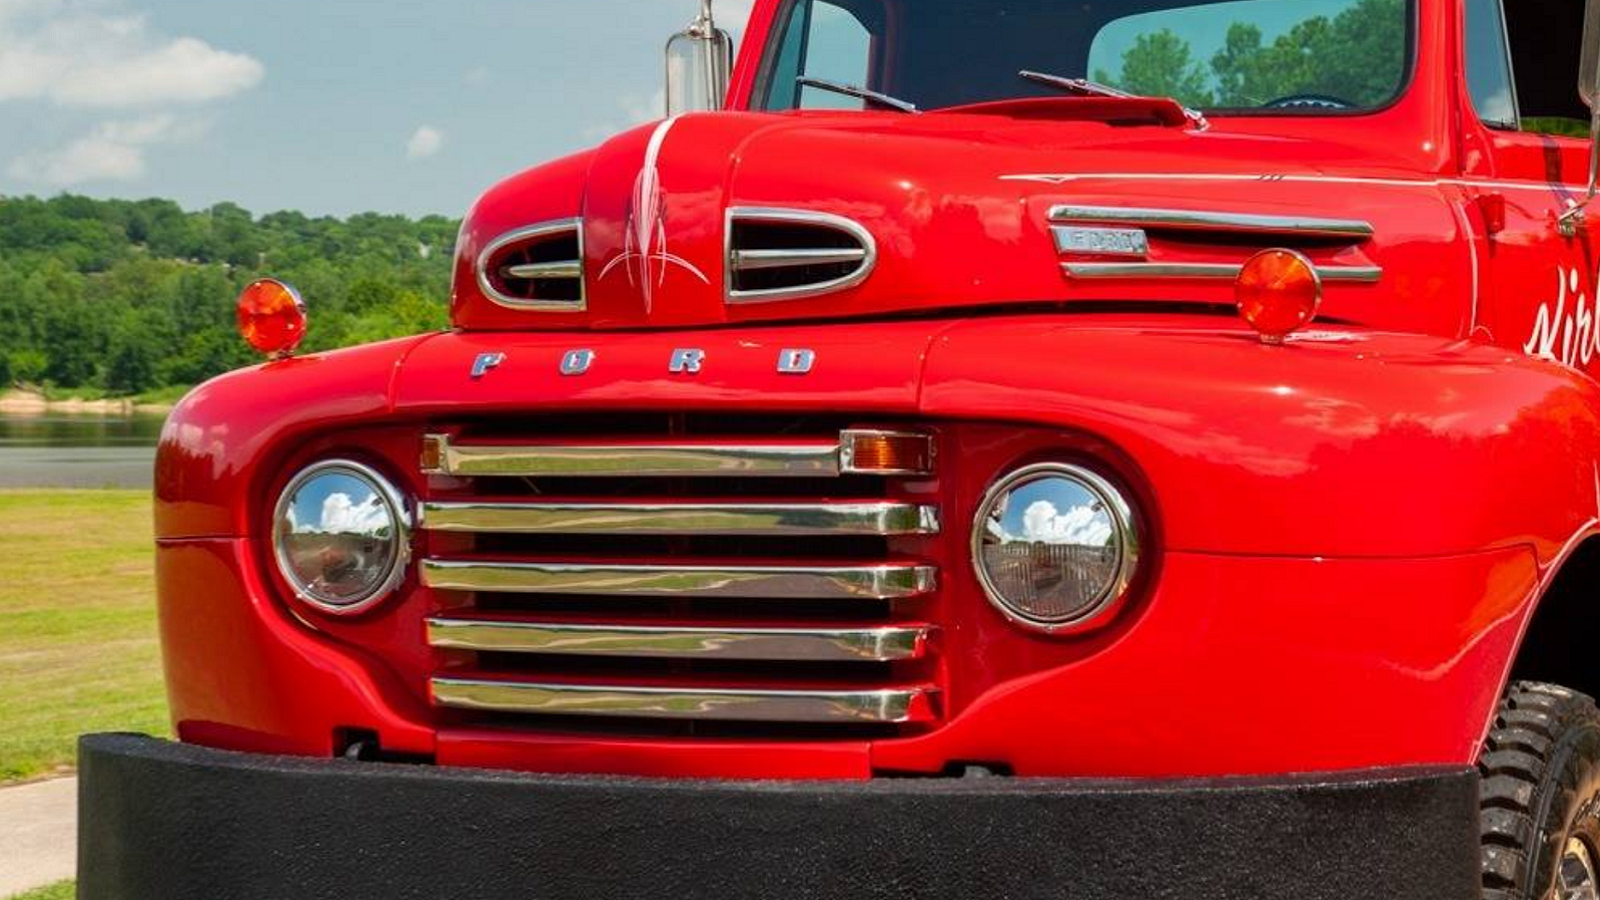 Ford F2 Is the Solution to Your Average, Boring Hauler